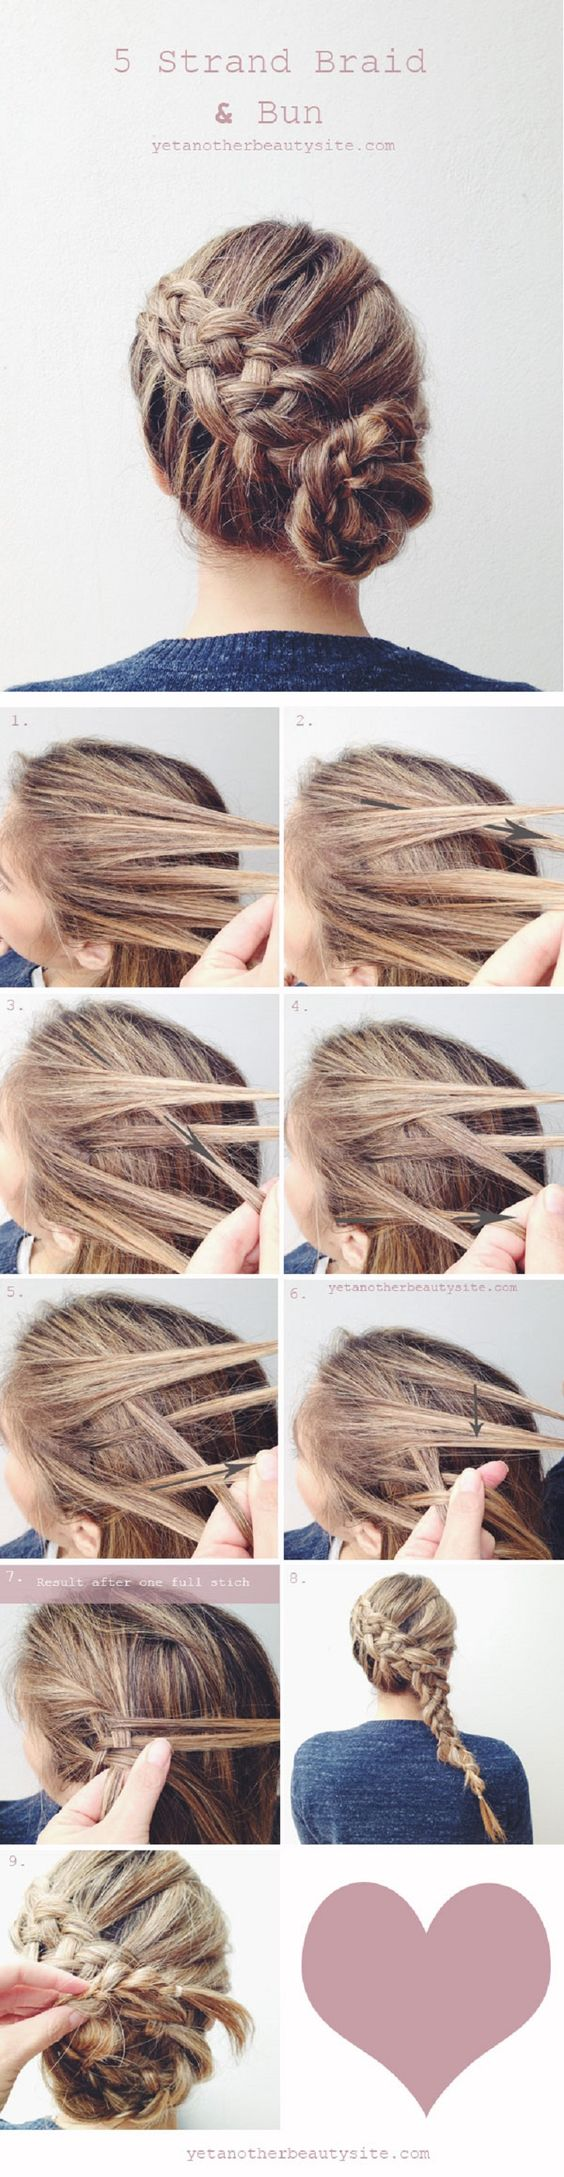 5 Strand Braided Hair via